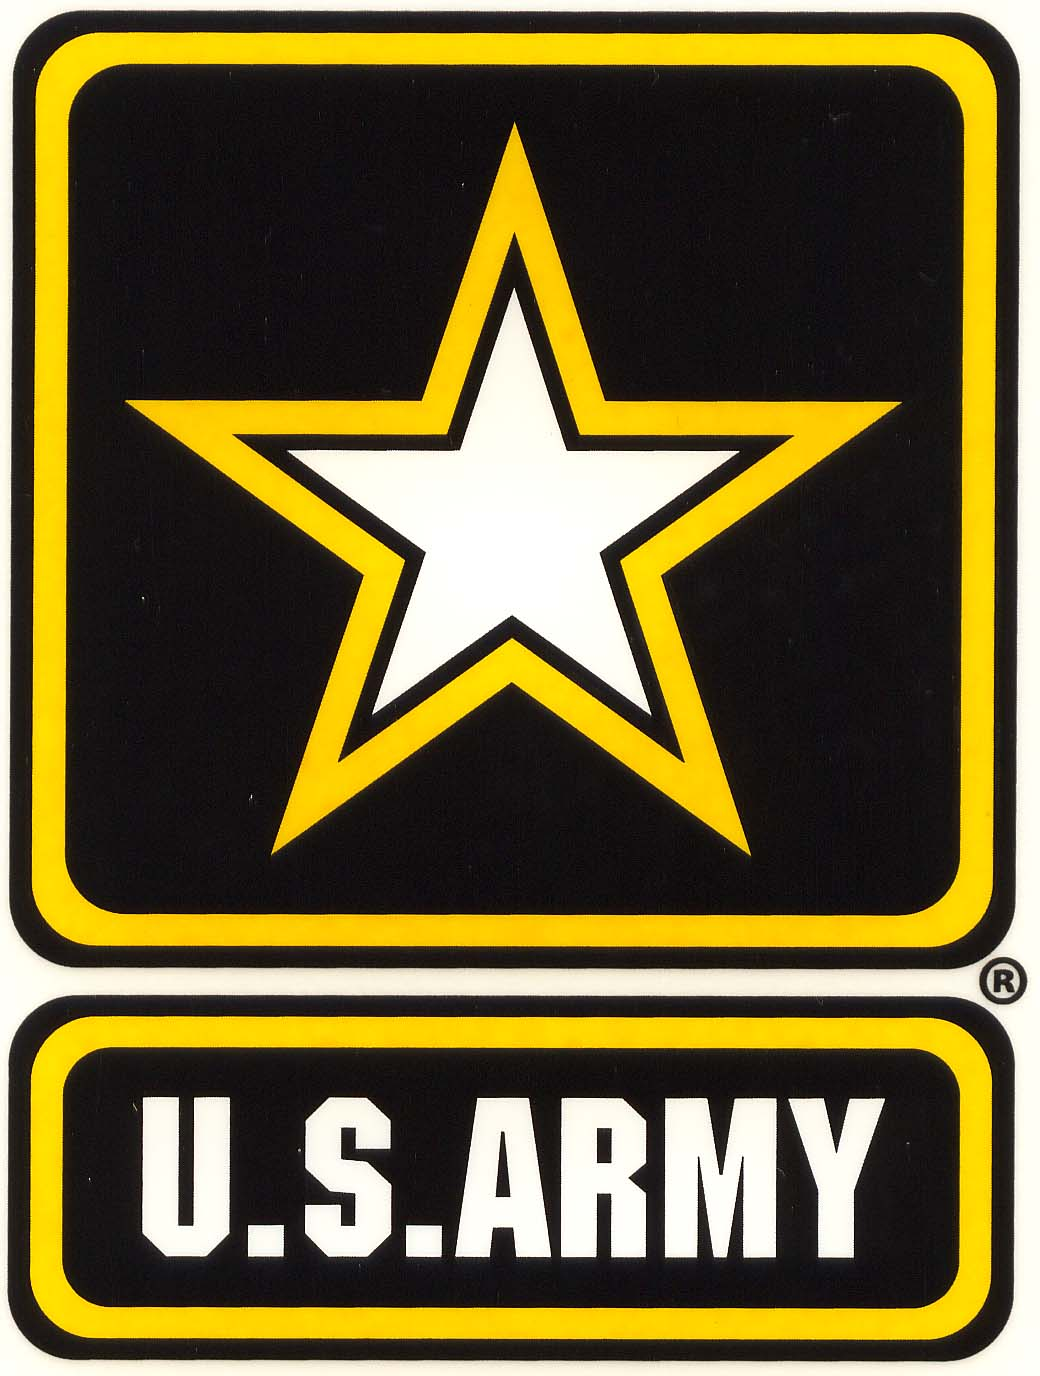 Us Army Logo 10602 Hd Wallpapers in Logos   Imagescicom 1040x1376